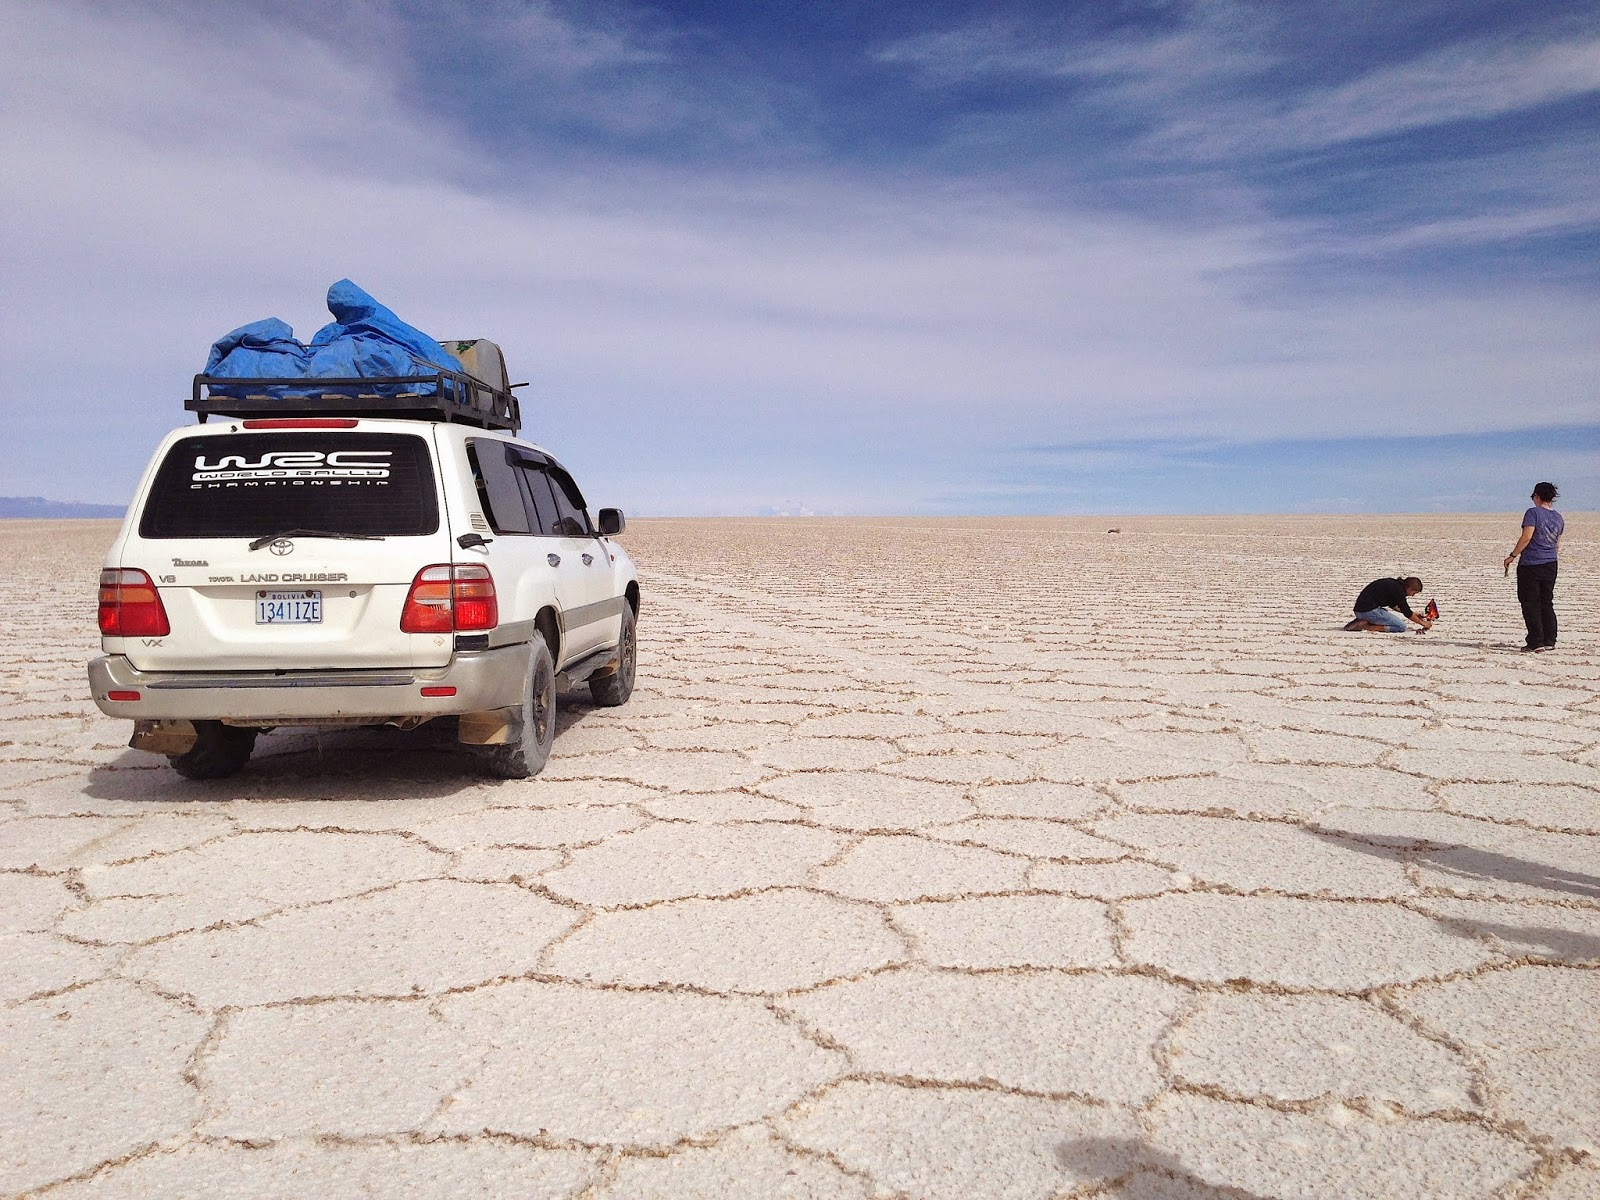 4WD Land Cruiser at Salar de Uyuni, Bolivia